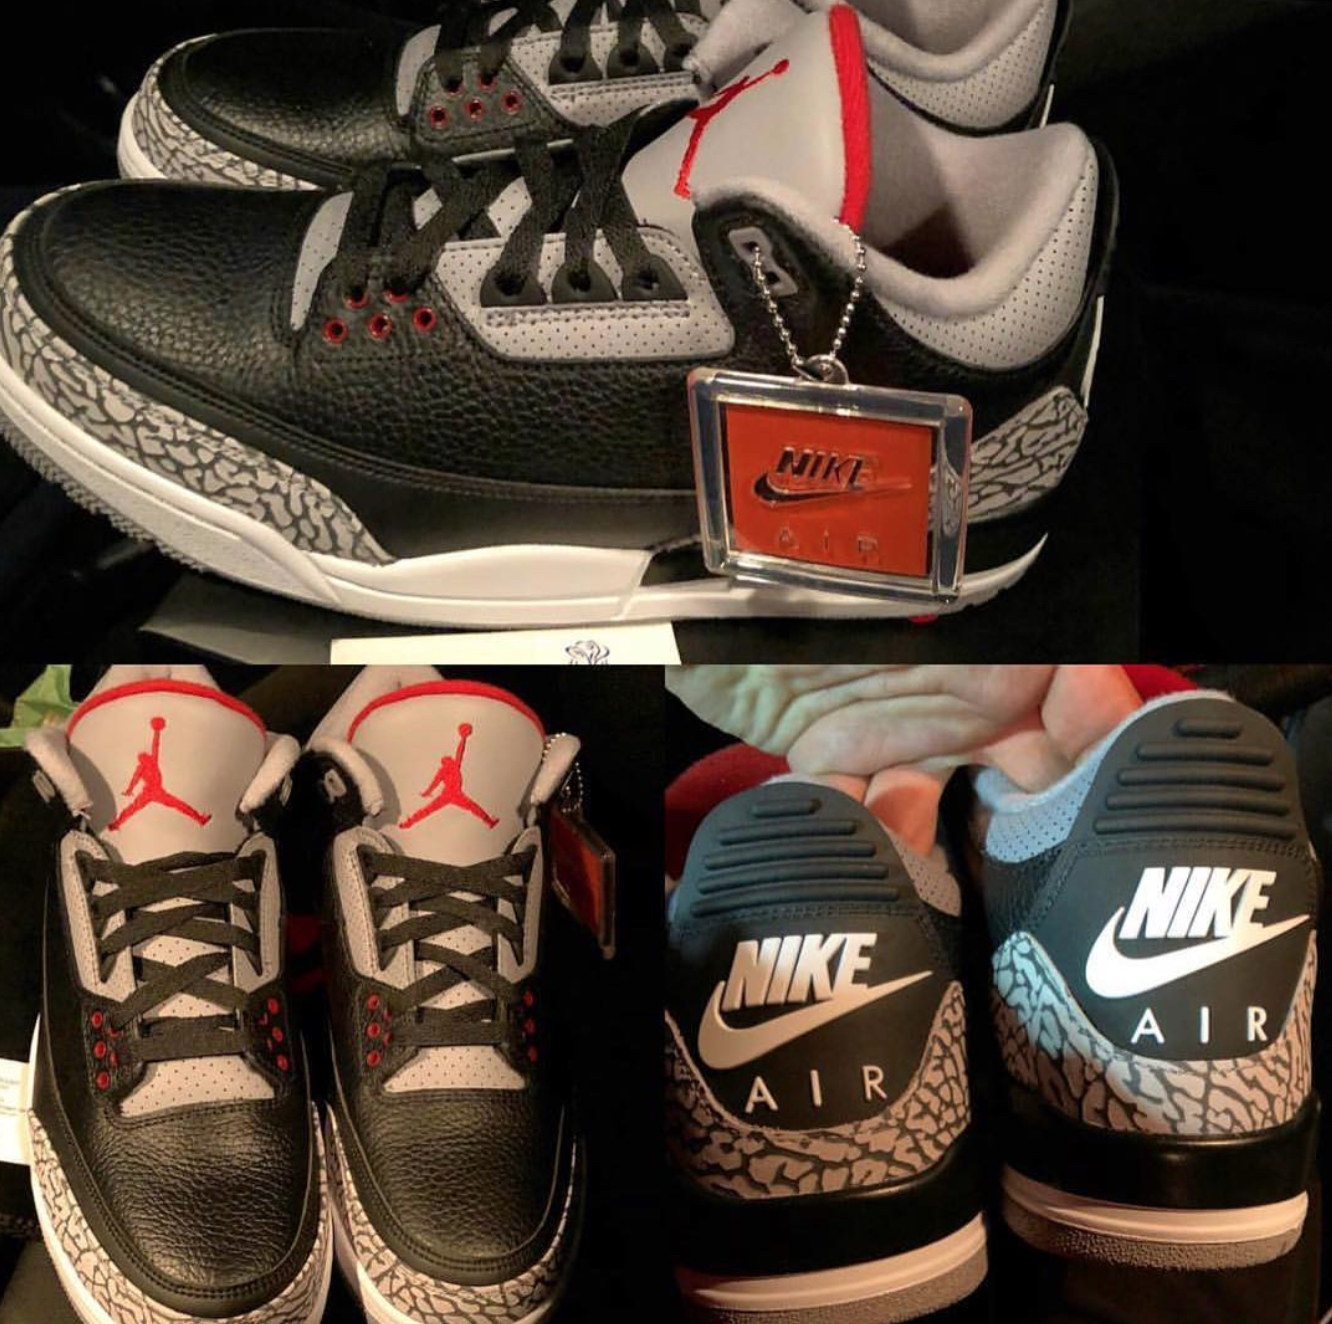 new styles e4930 882d6 The 2018 Air Jordan 3 'Black Cement' Has a Release Date ...